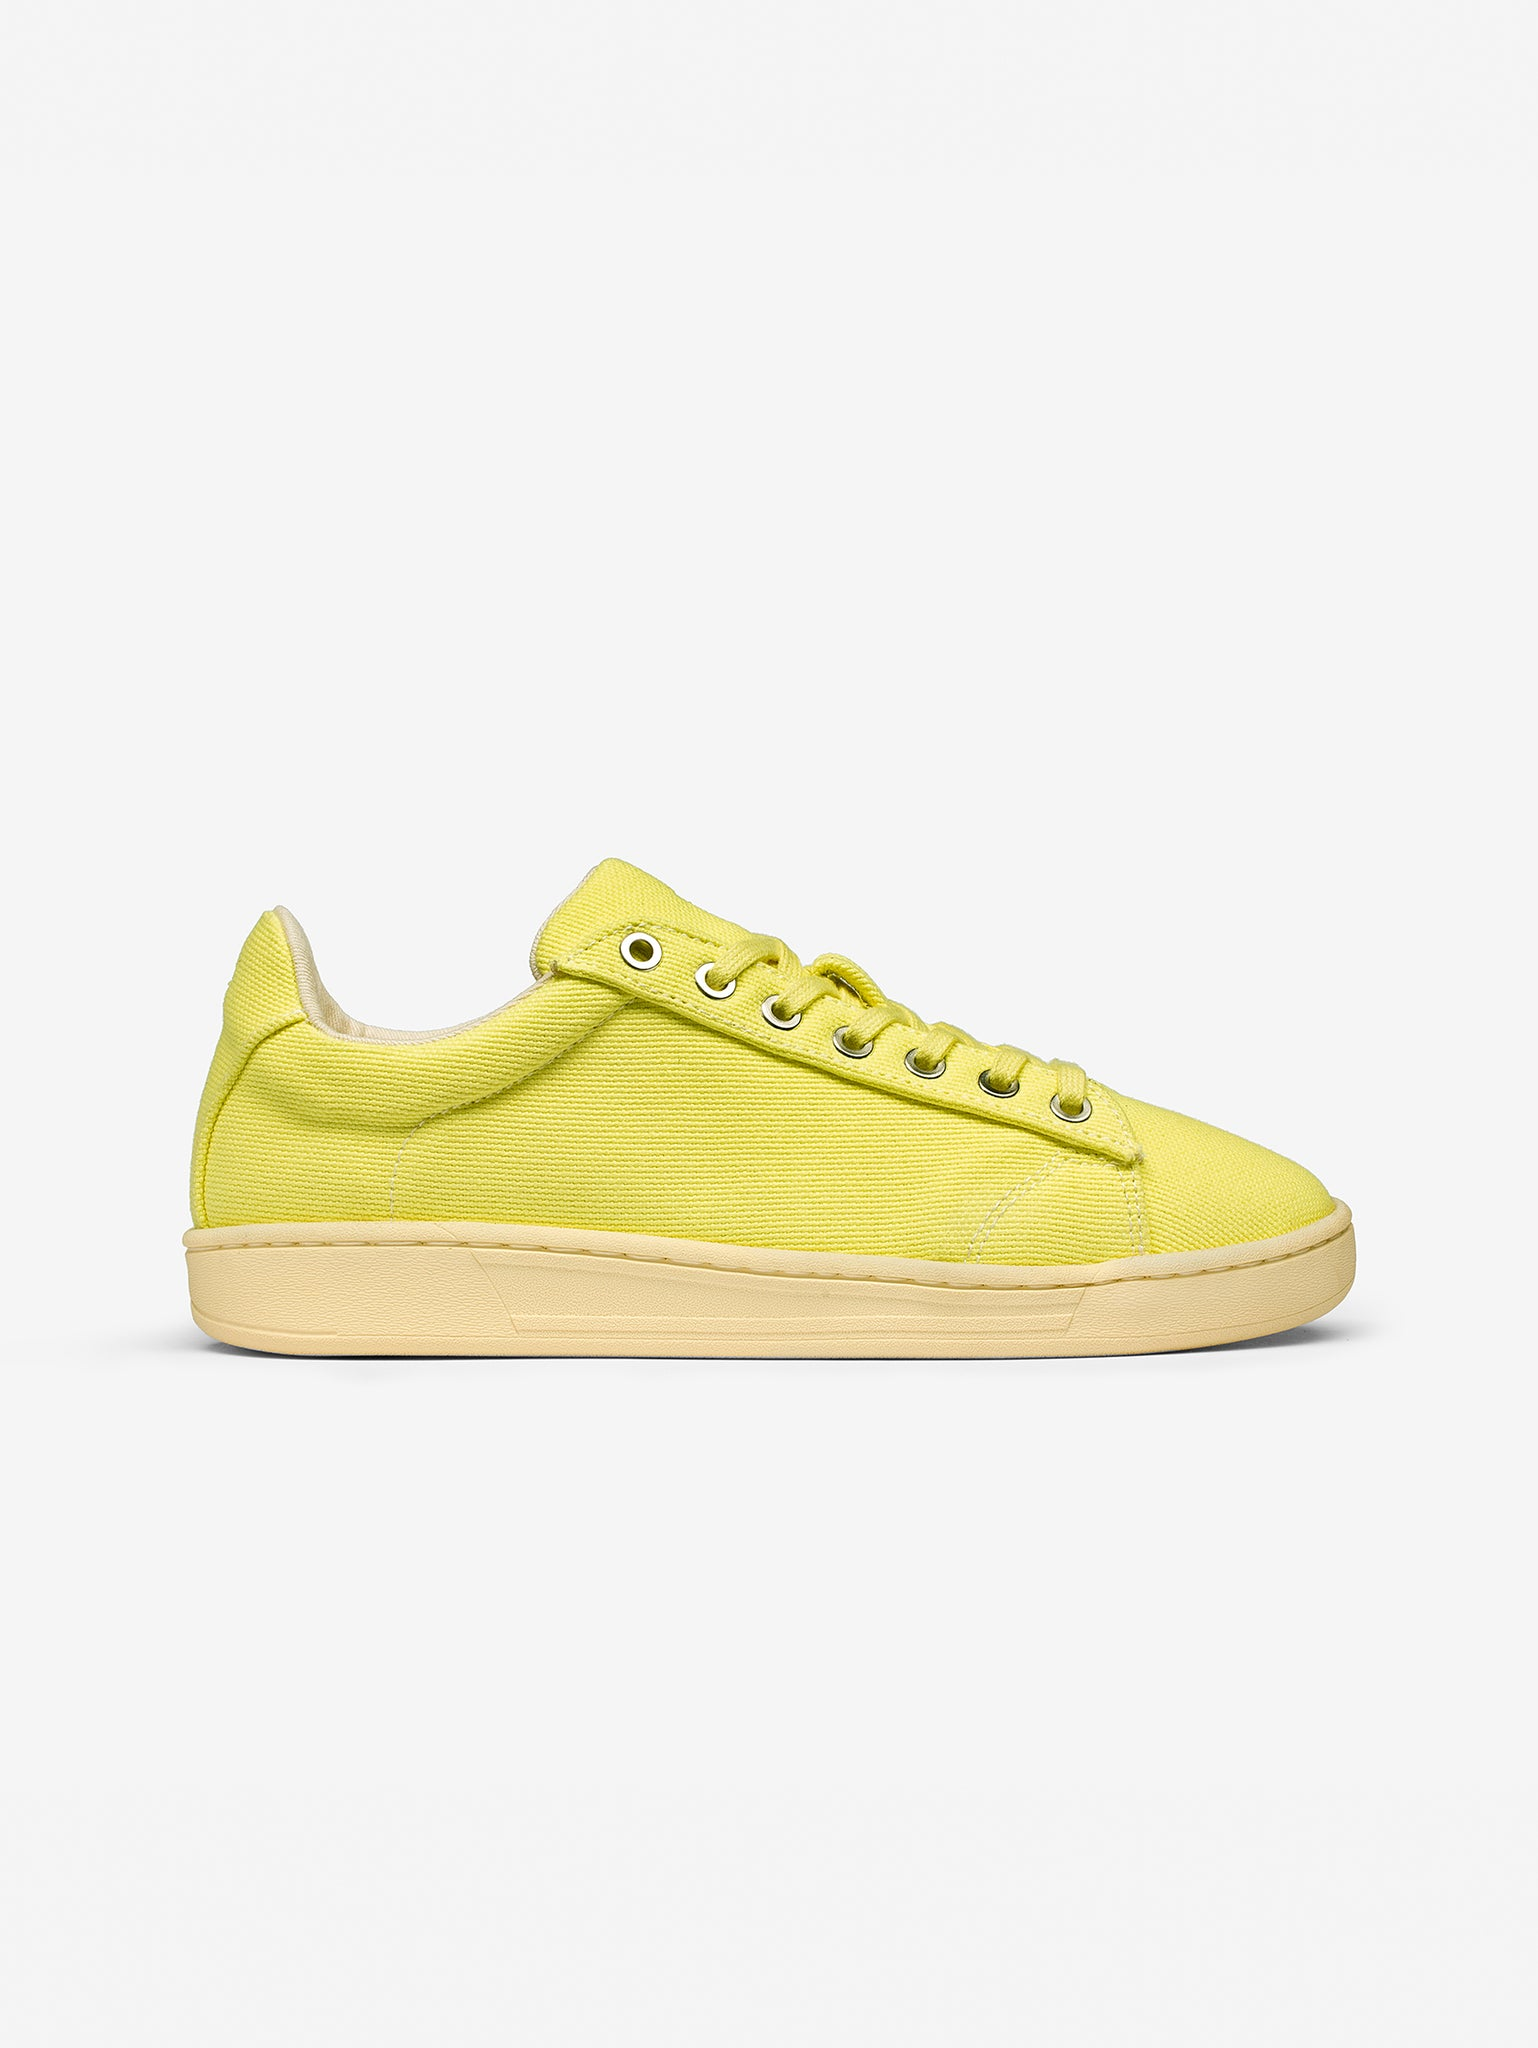 1982 - Limon Organic Canvas White Sole